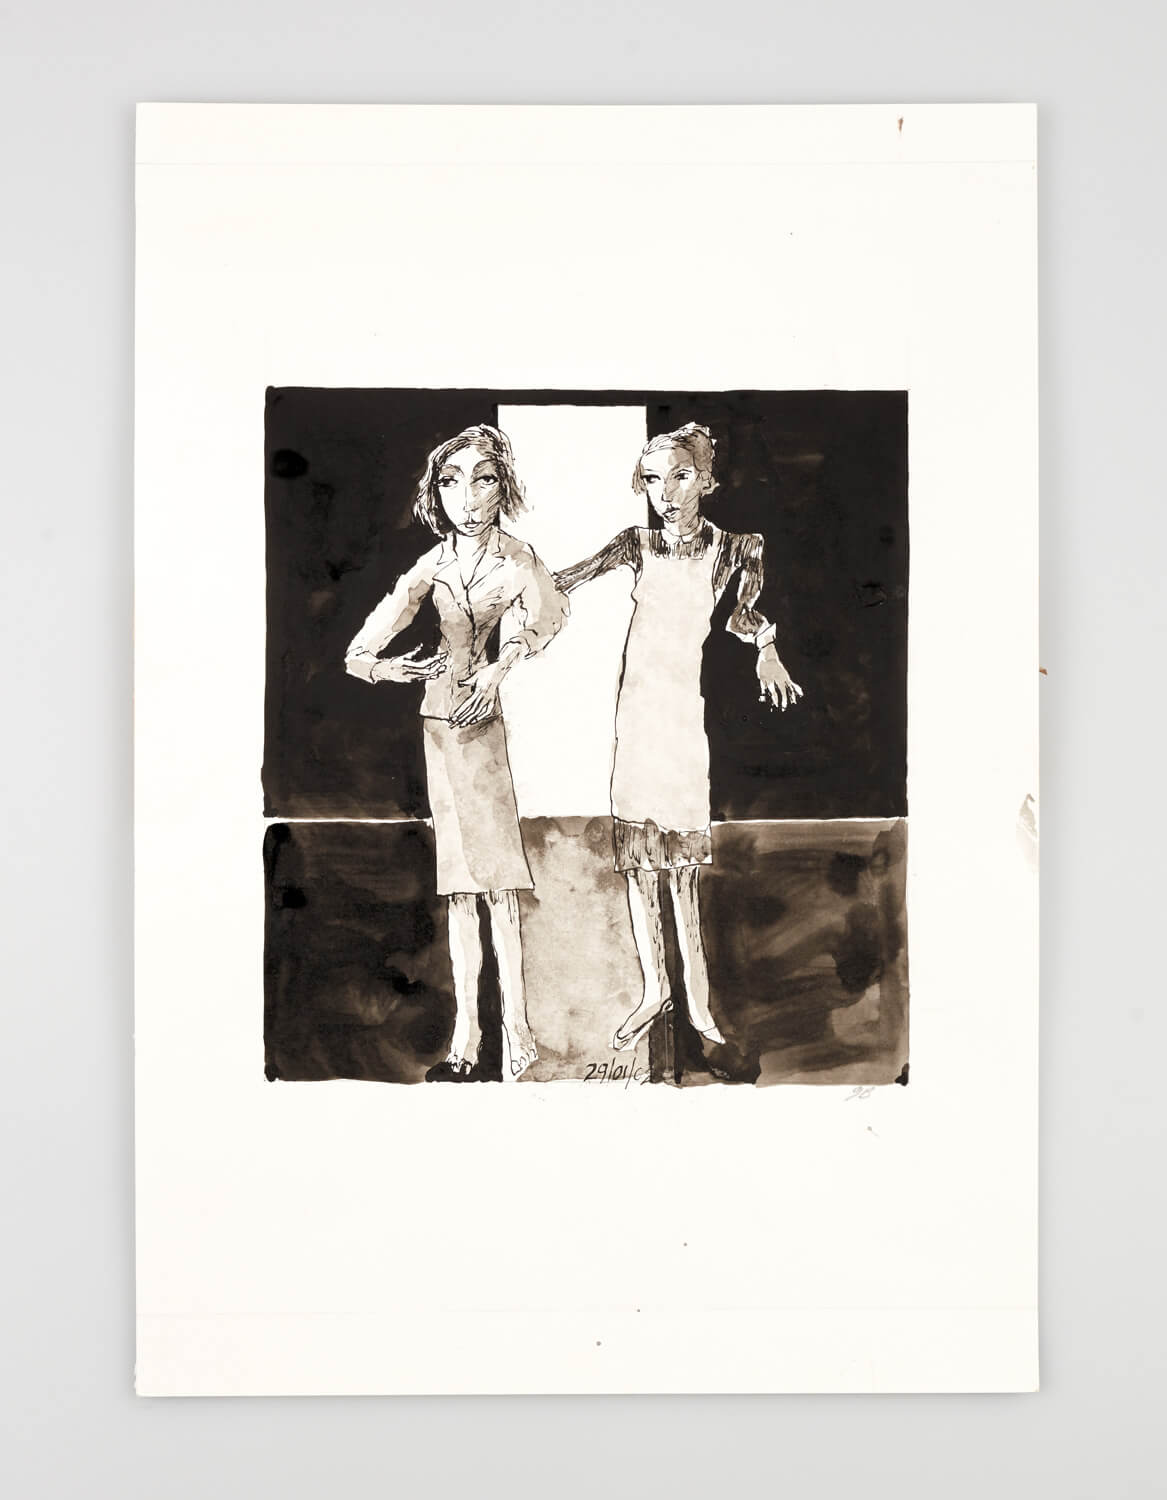 JB051 - Two Women - Being dressed - 2002 - 50 x 35 cm - Indian ink and wash on paper